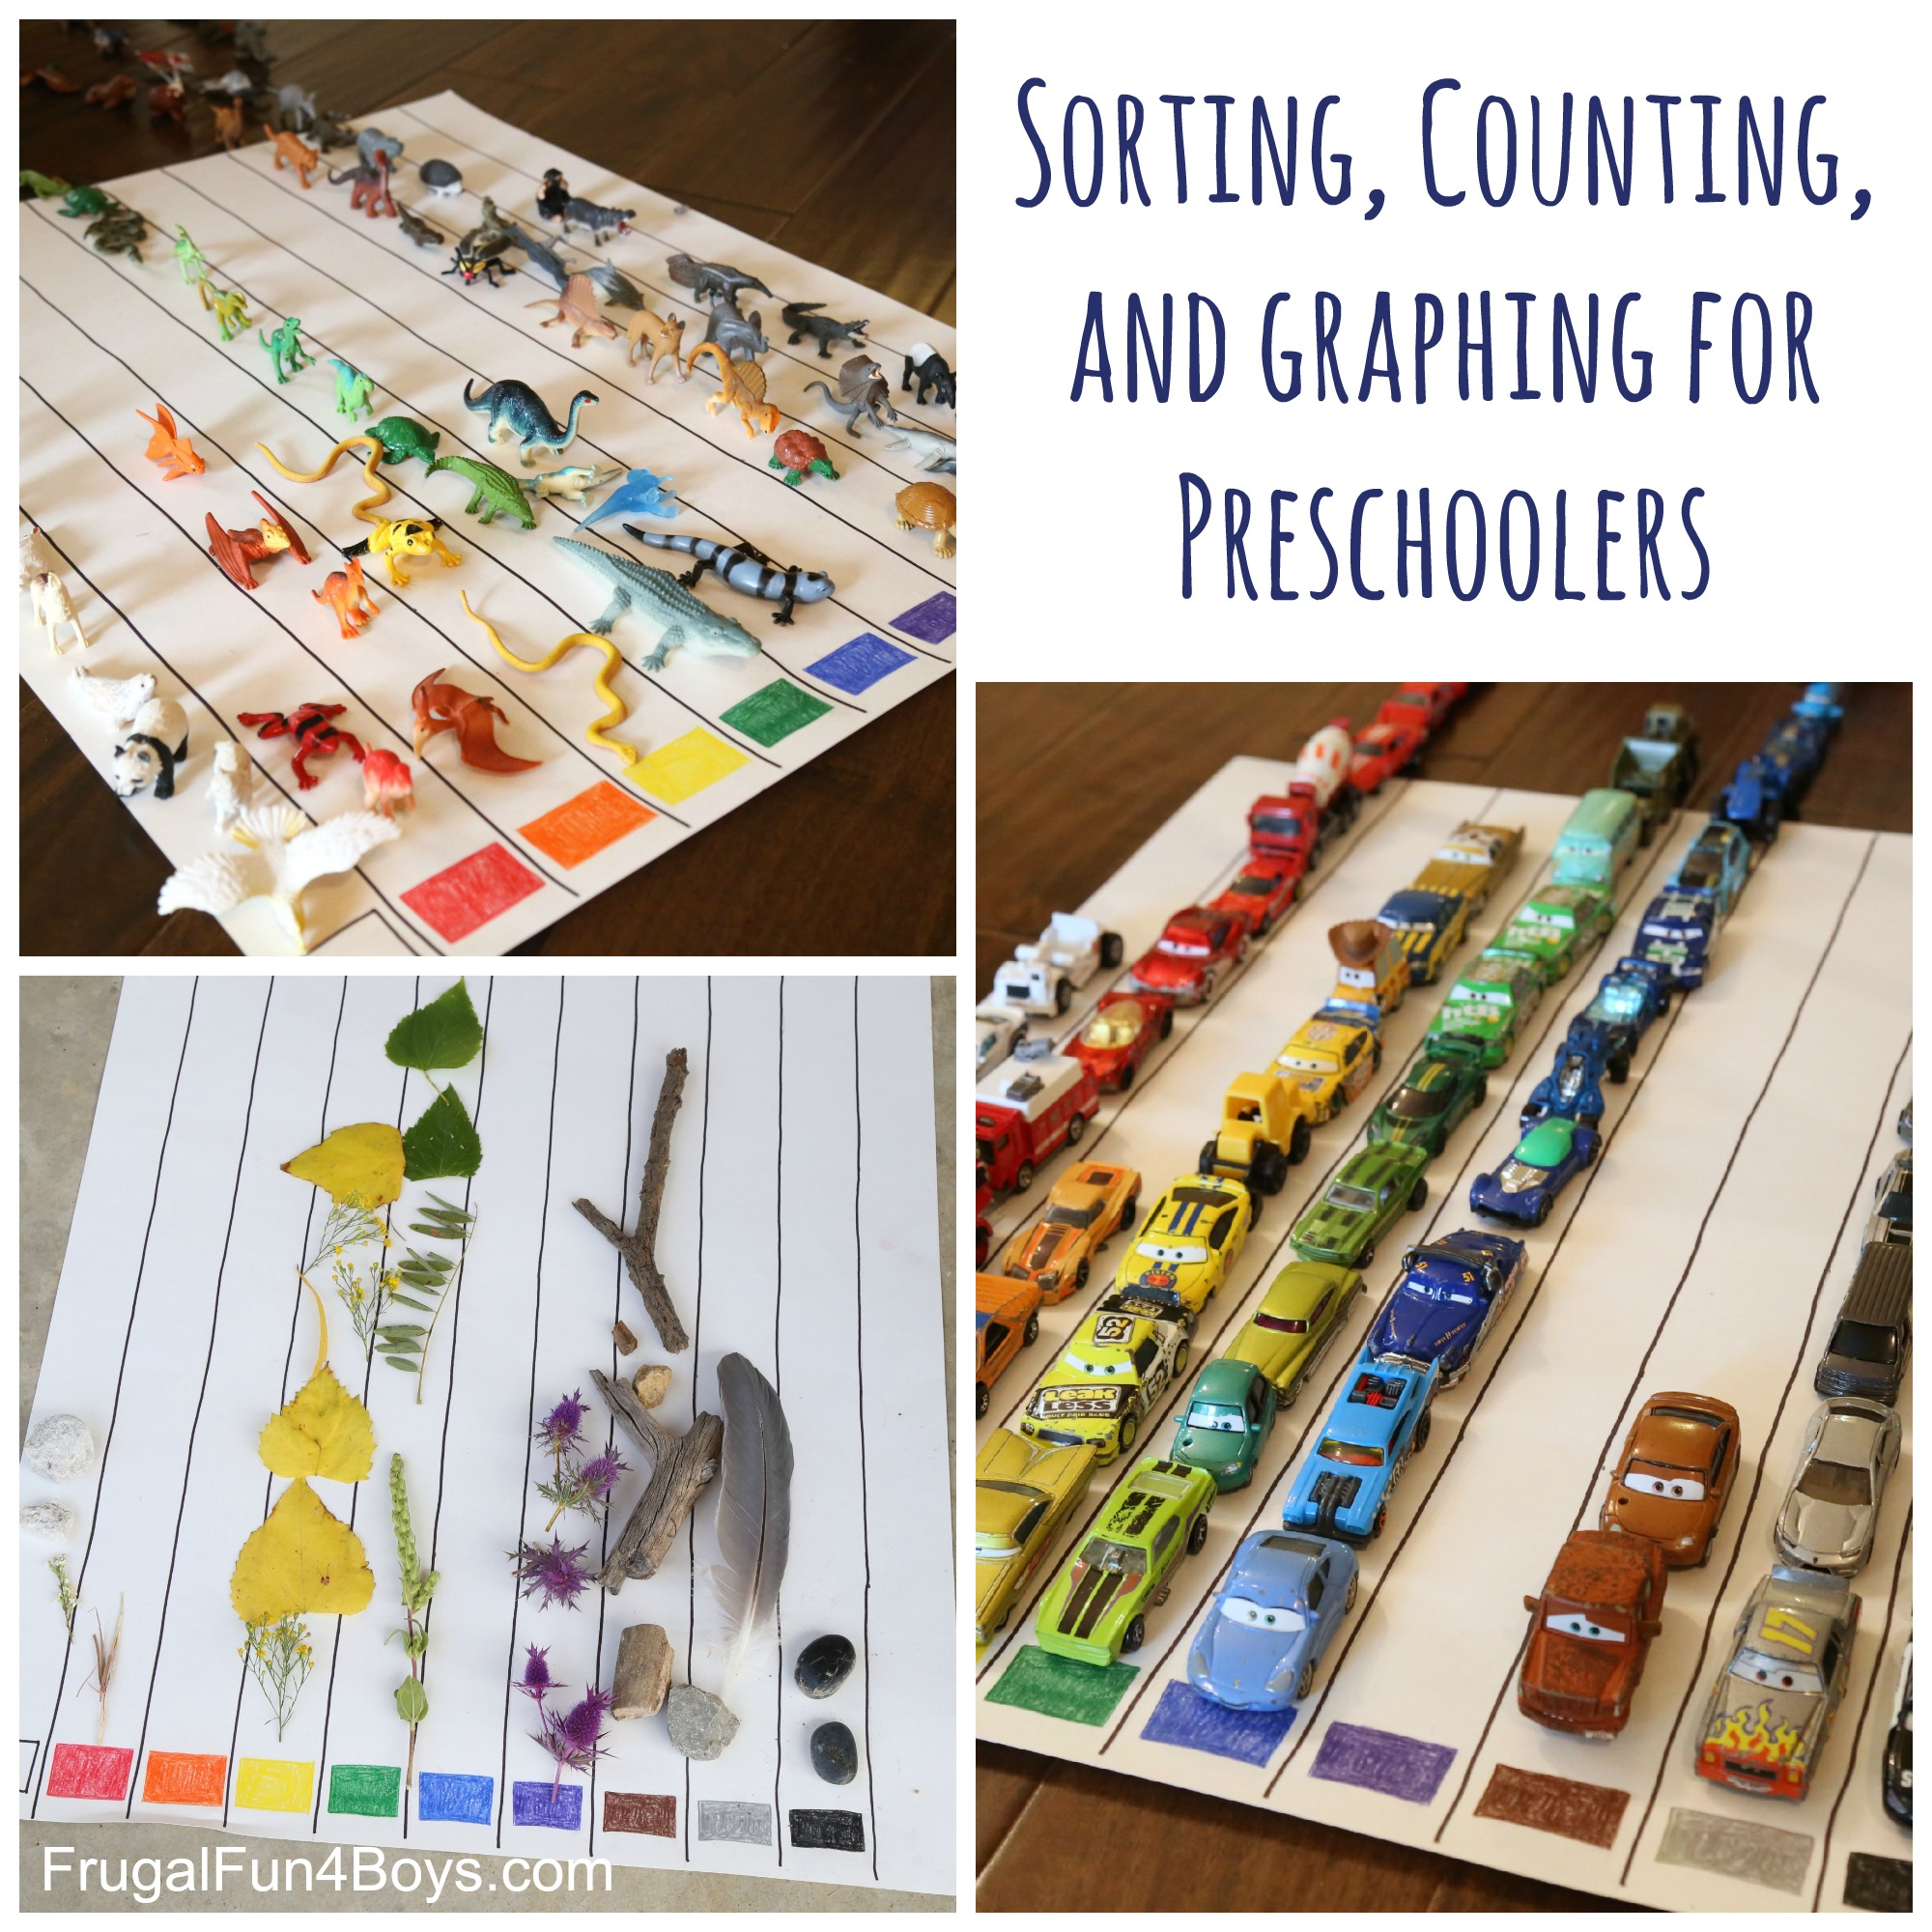 Sorting, Counting, and Graphing for Preschoolers